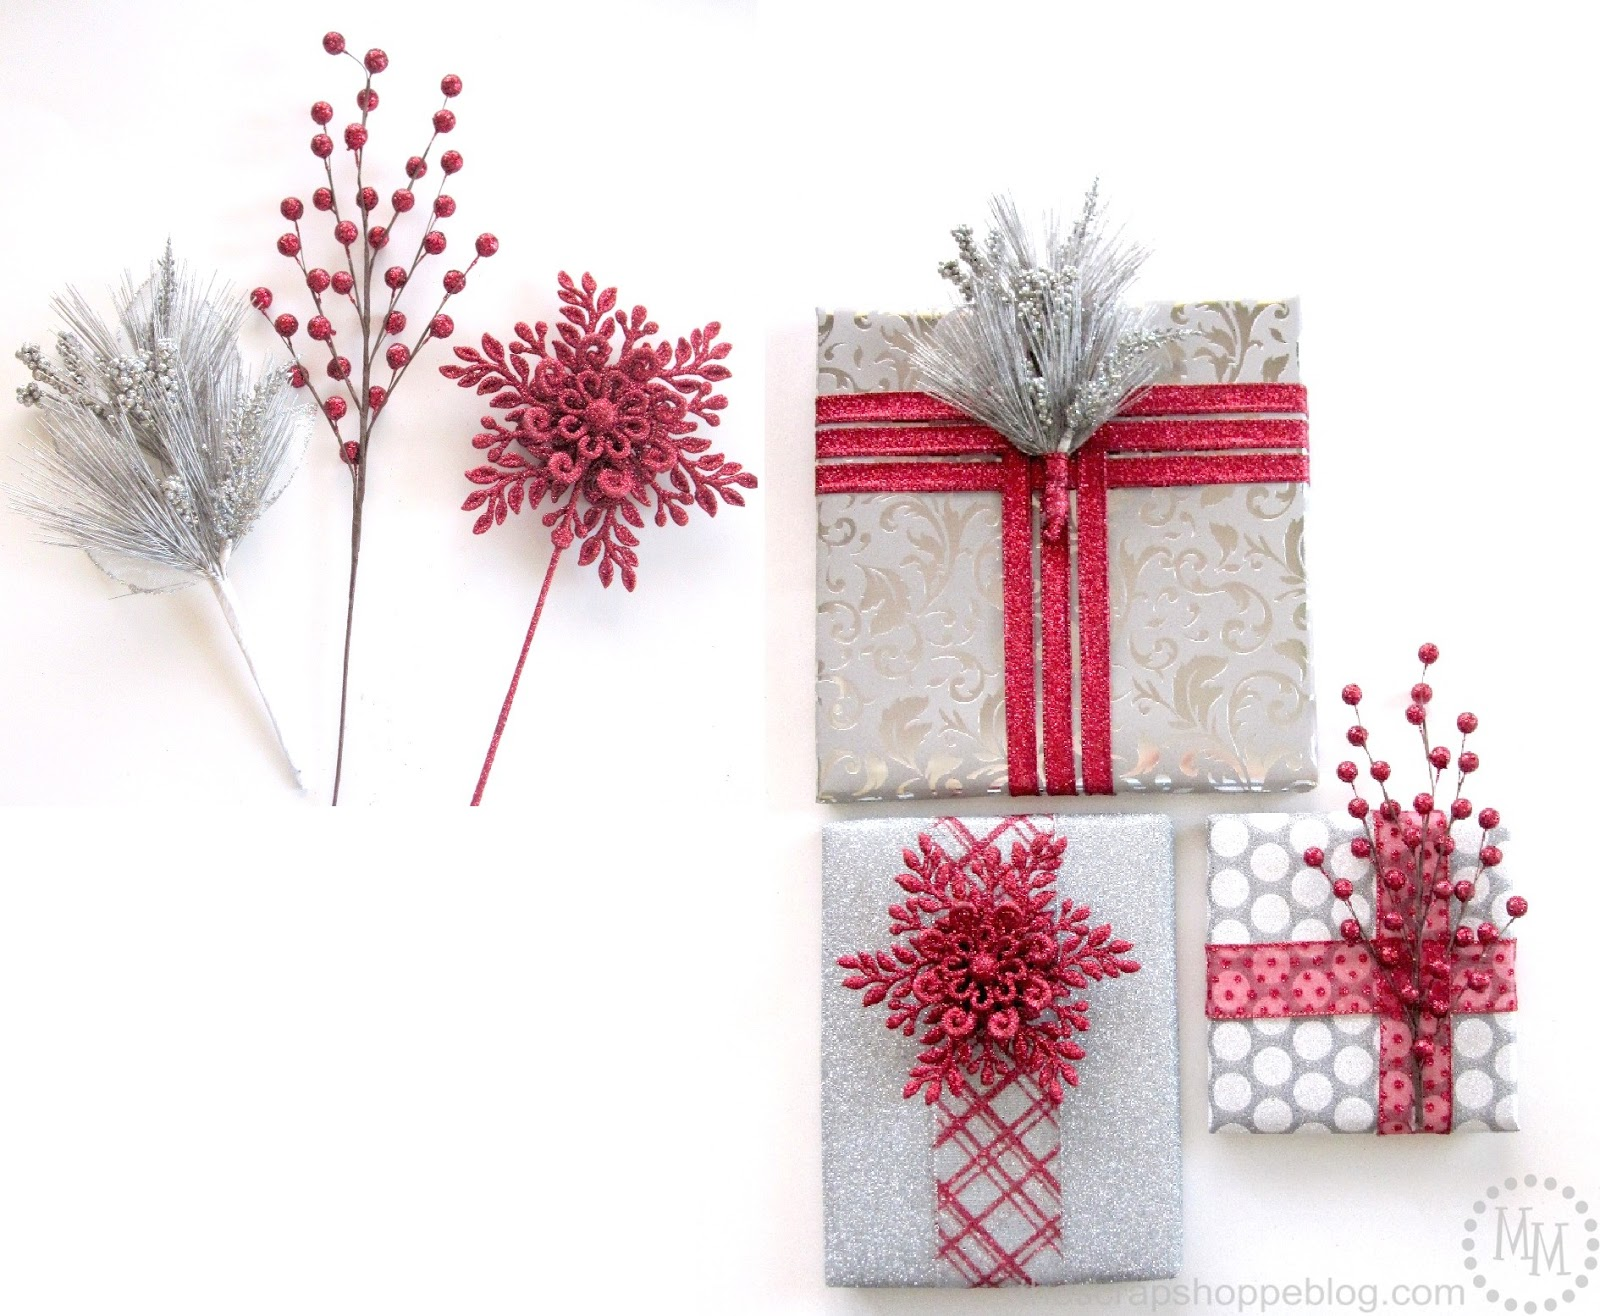 faux wrapped presents decorations - Christmas Present Decoration